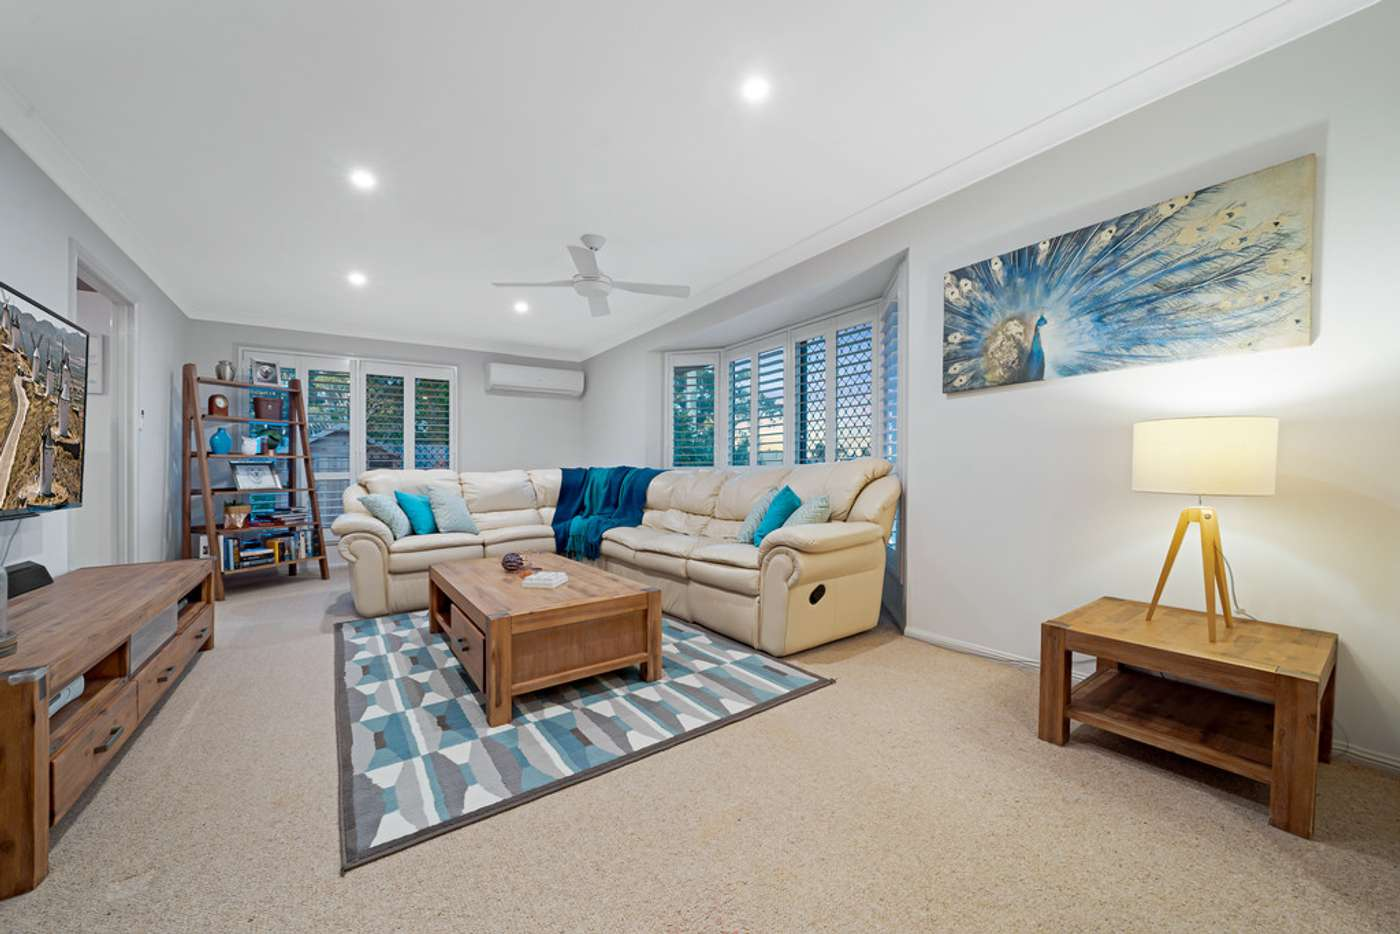 Fifth view of Homely house listing, 1 Olivia Court, Regents Park QLD 4118